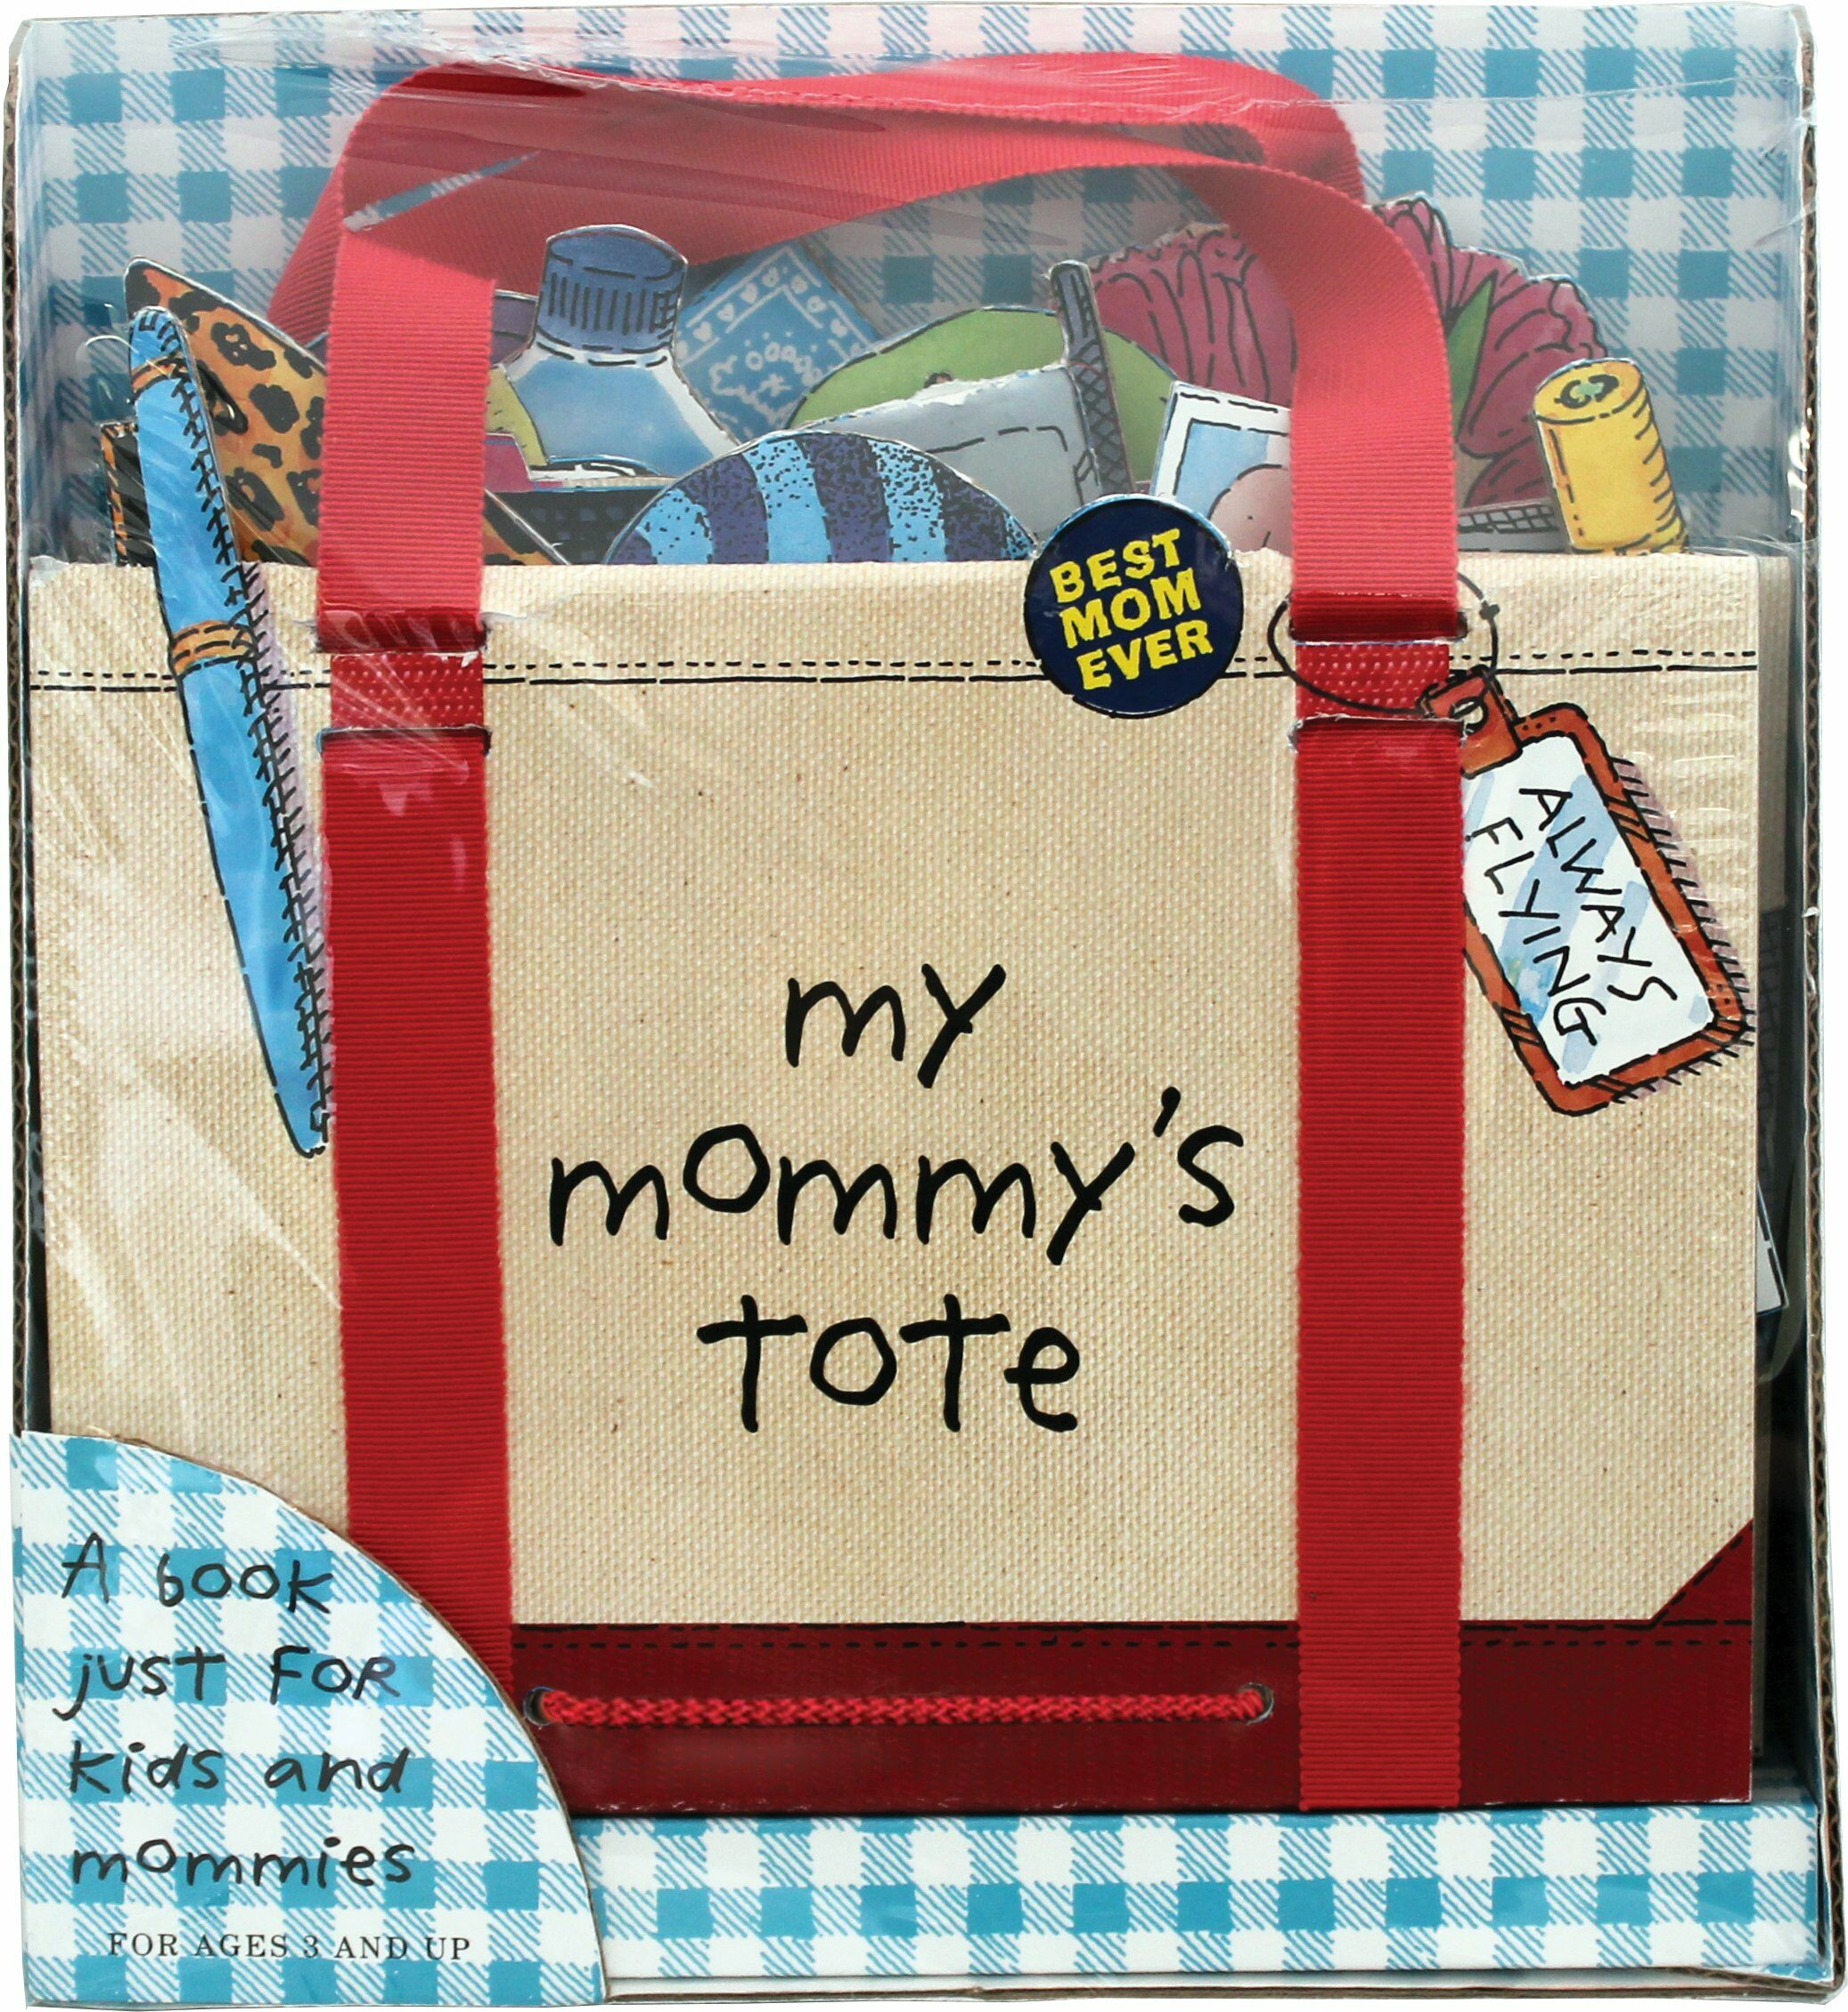 My Mommys Tote (Hardcover)